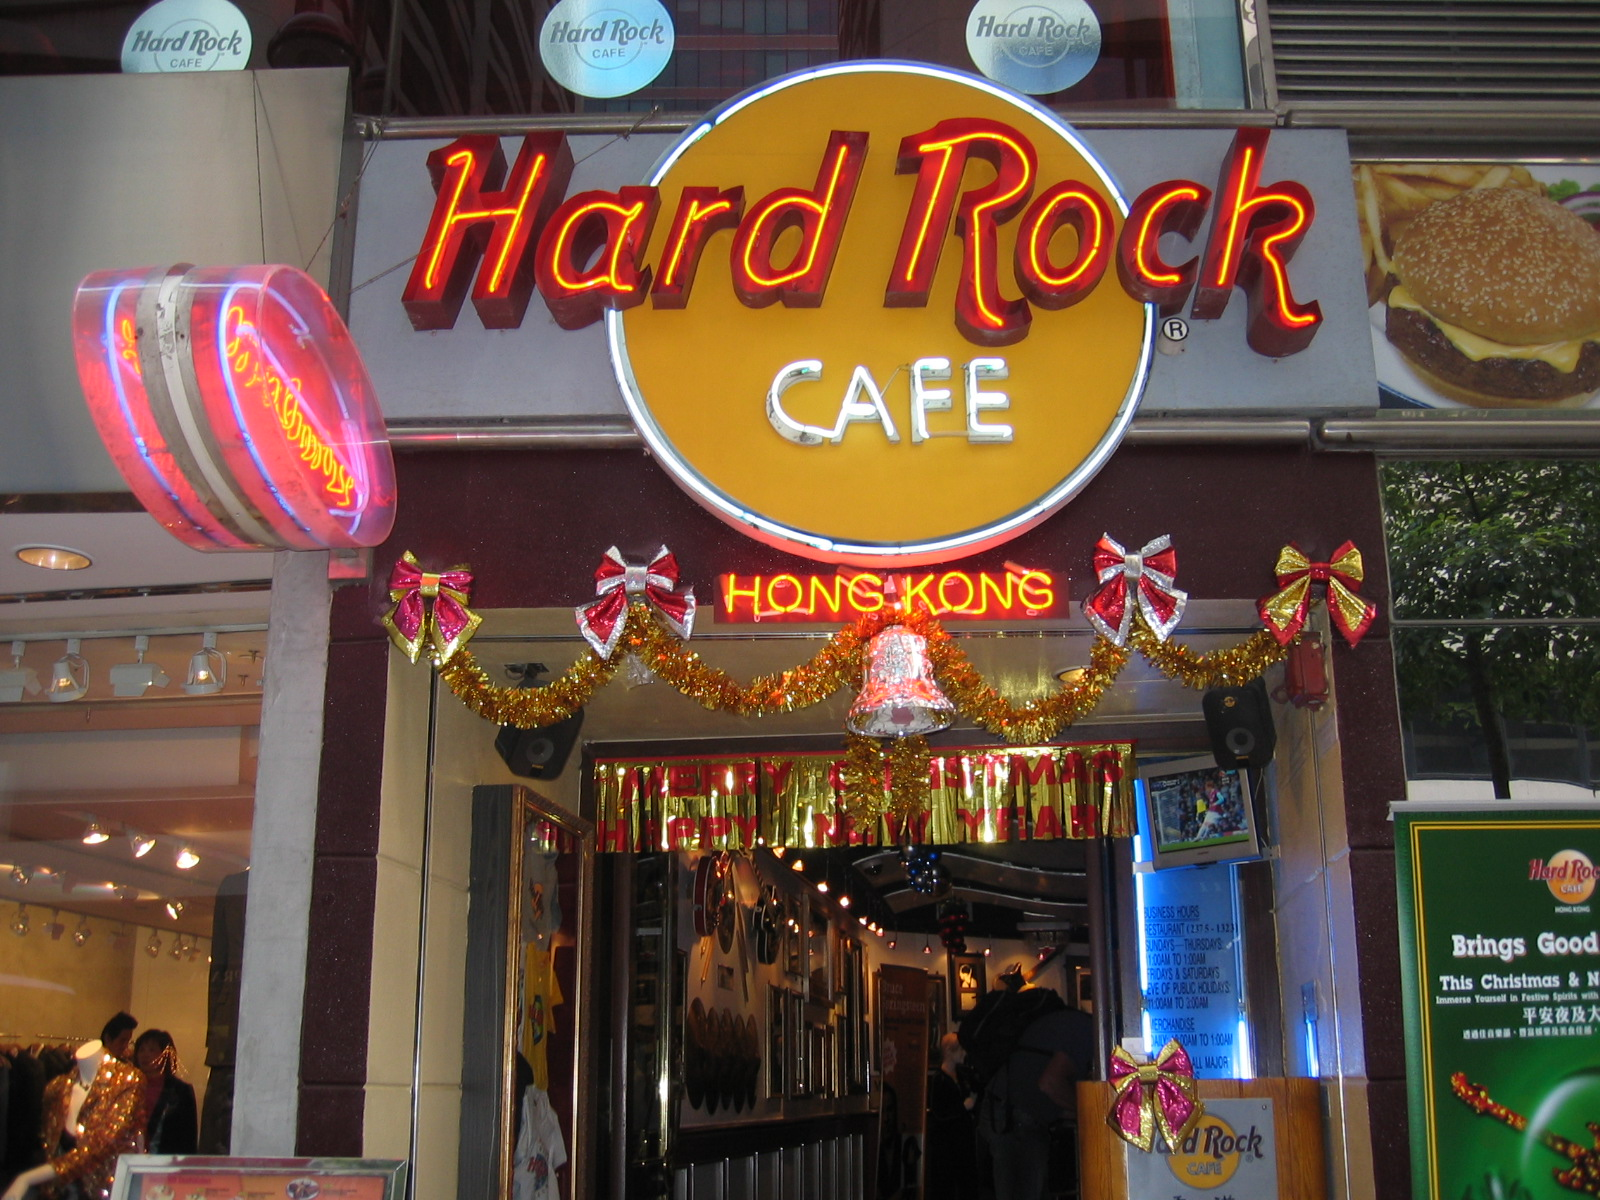 Hard Rock Cafe Dubai Live Band